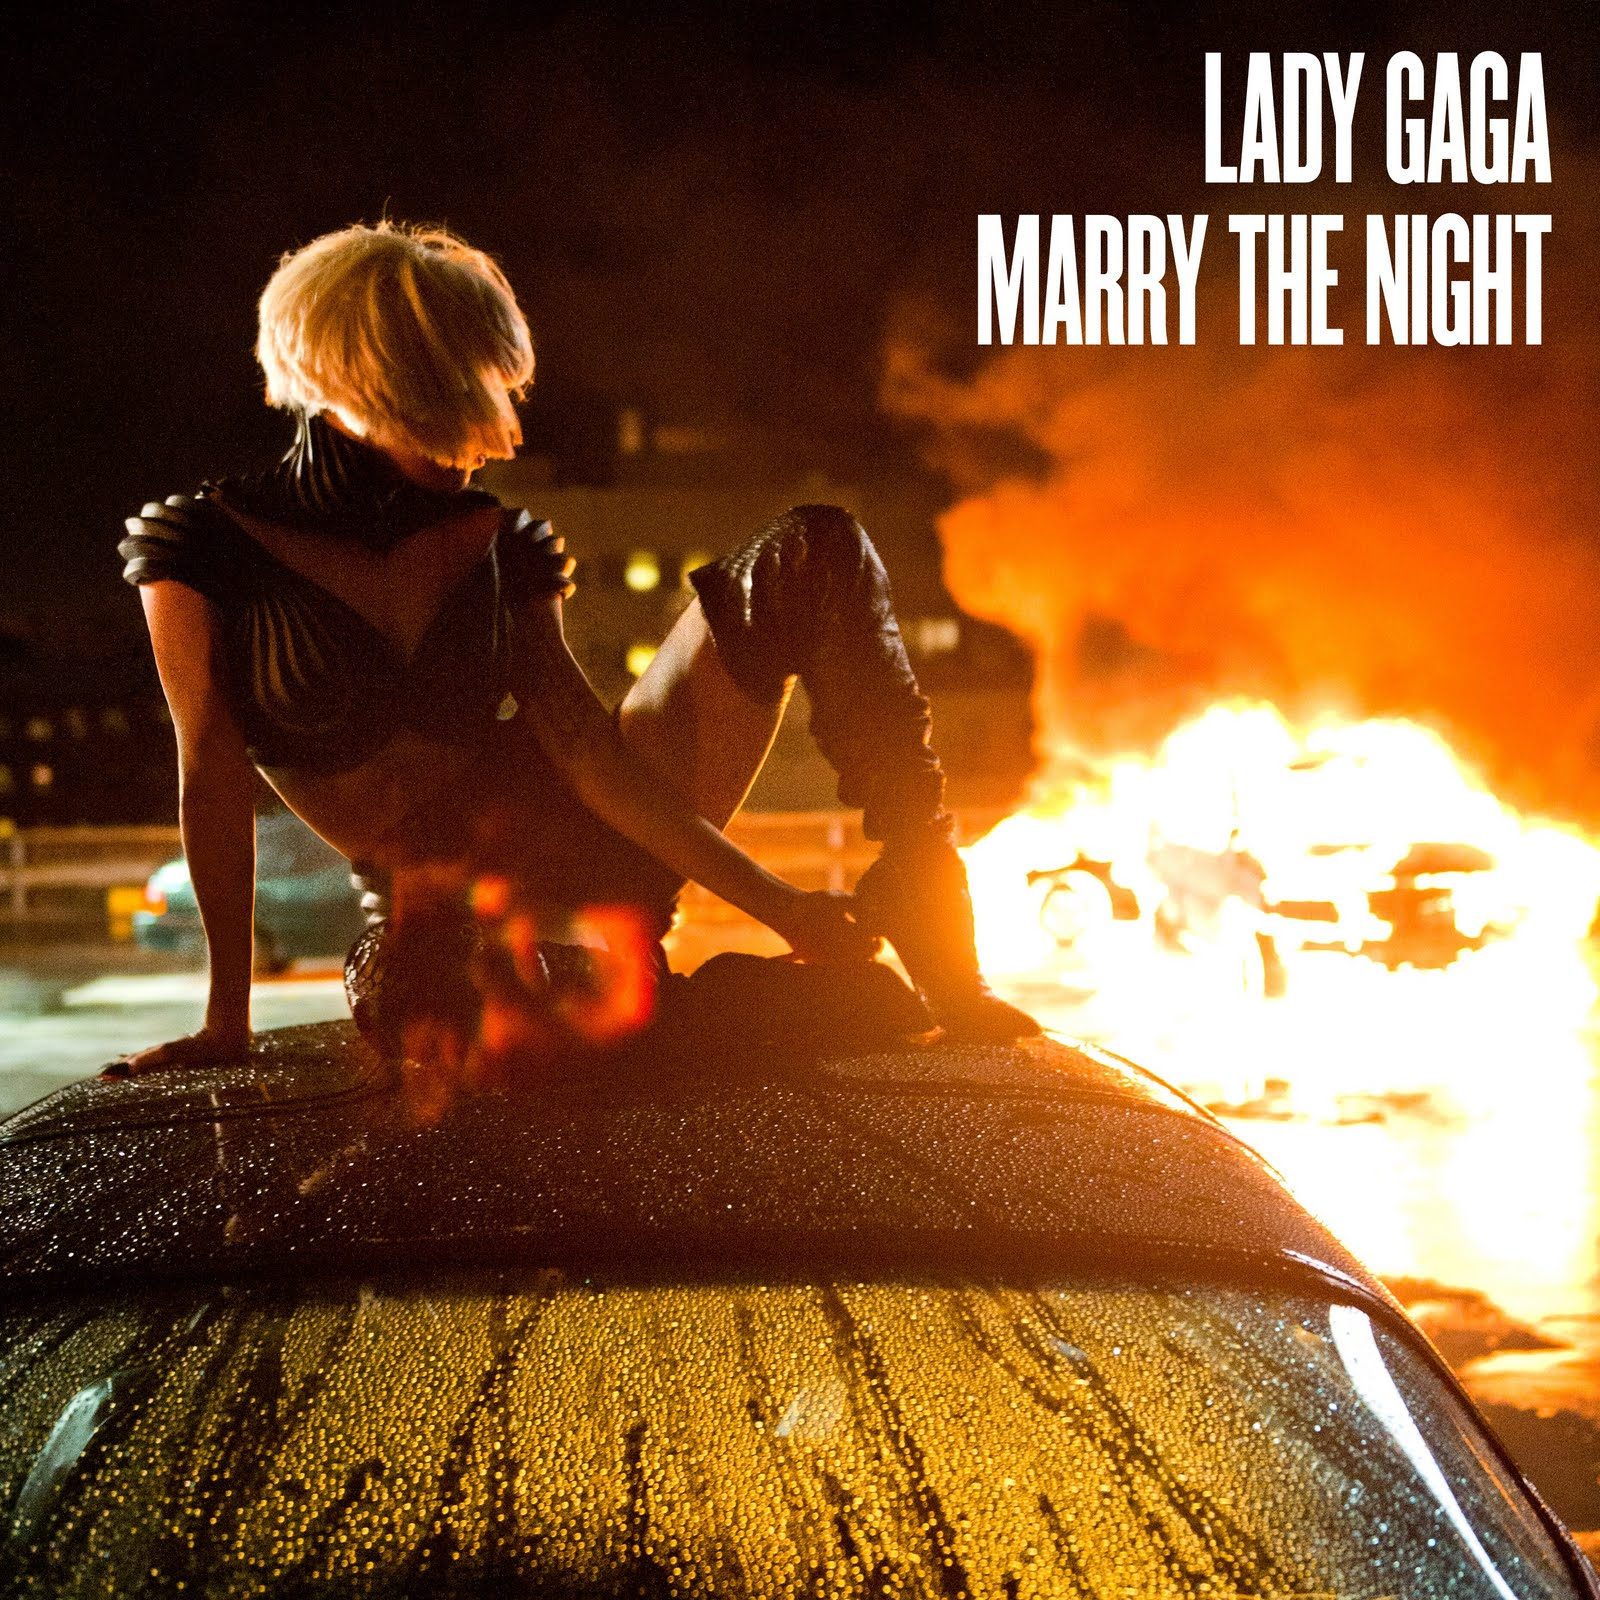 http://4.bp.blogspot.com/-6_ZS0D9zCIk/Tp0dKlbxF-I/AAAAAAAABO8/8KxMN-LT03A/s1600/lady-gaga-marry-the-night.jpg